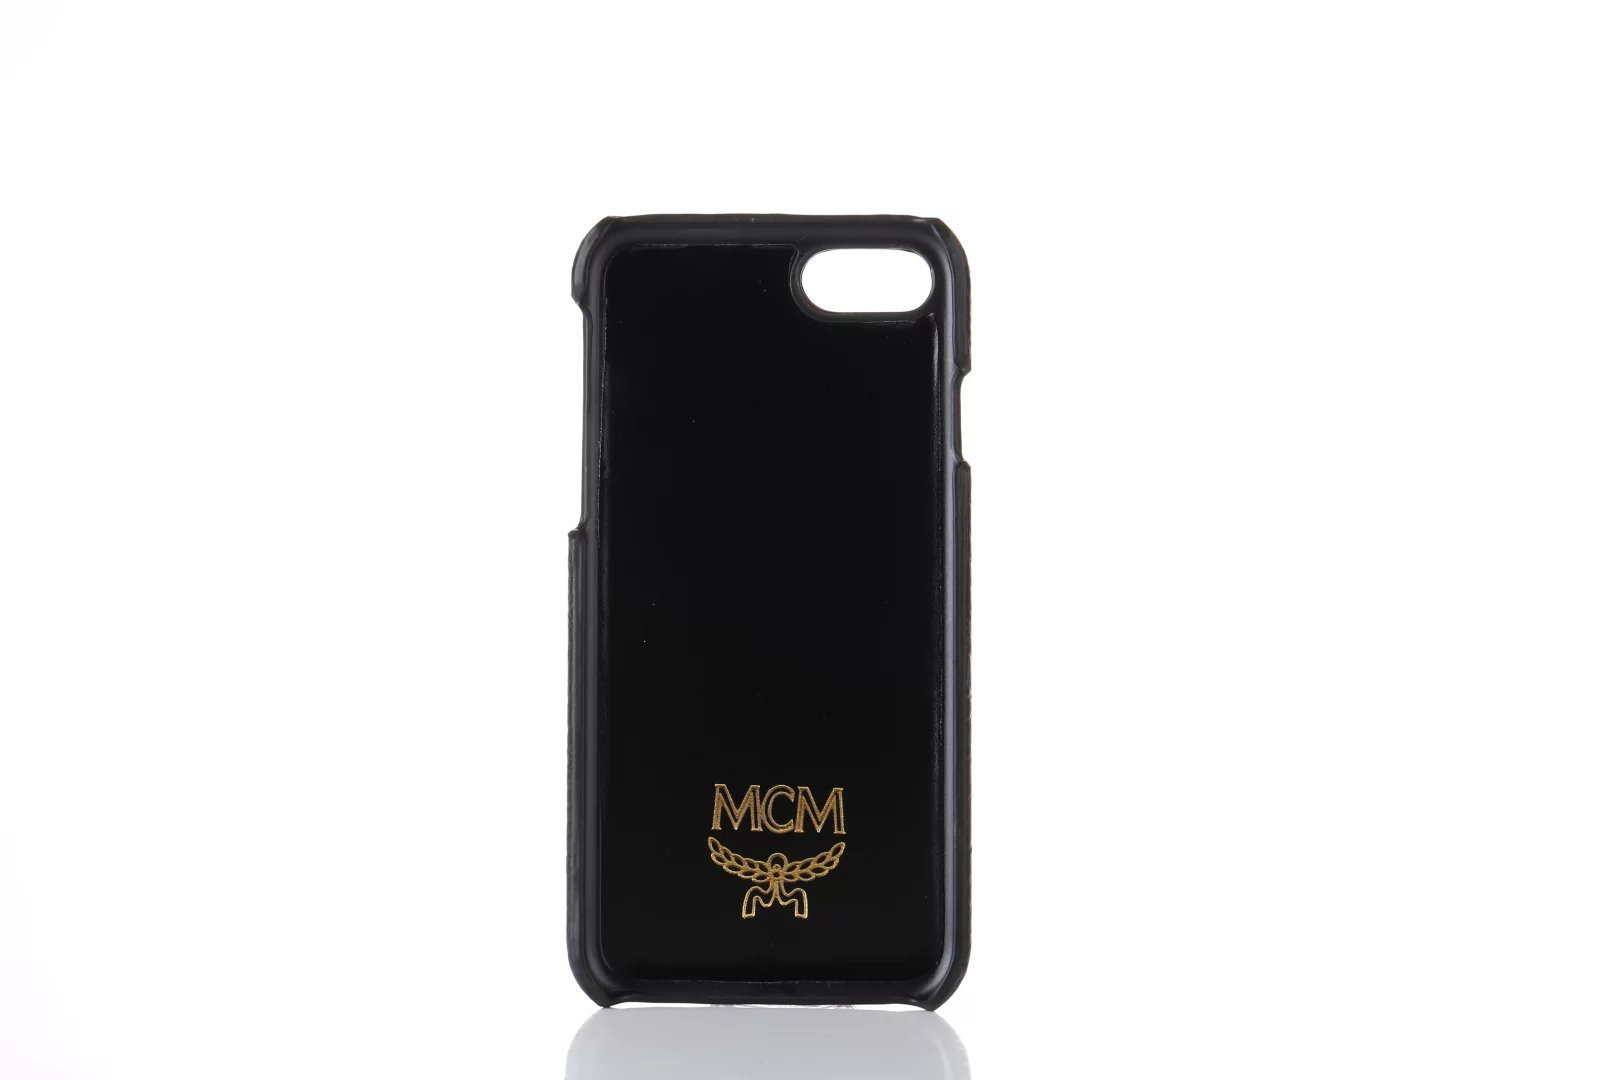 designer iphone 8 Plus s cases great iphone 8 Plus cases MCM iphone 8 Plus case cool iPhone 8 Plus case designs iphone four cases tory burch cell phone case mophie juice pack for iphone 8 Plus 6 s cases icover cases